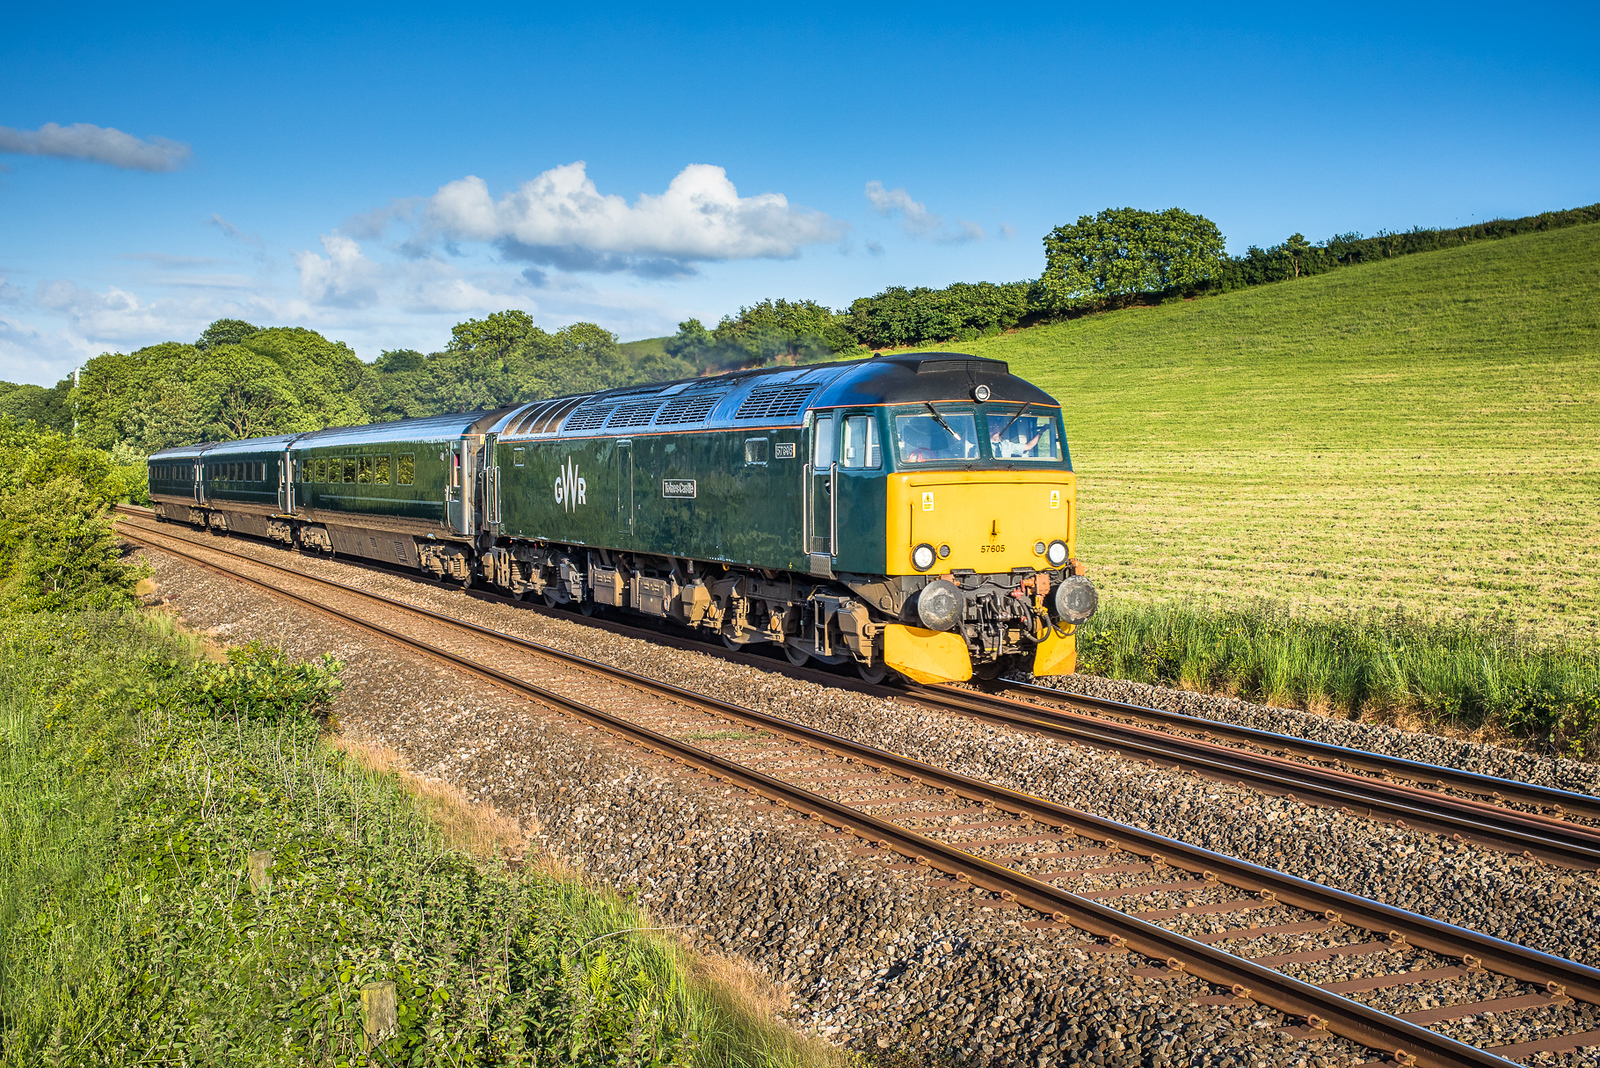 030617  ..57605 nears Crift lane with the 2C51 1750 Exeter St Davids to Penzance.